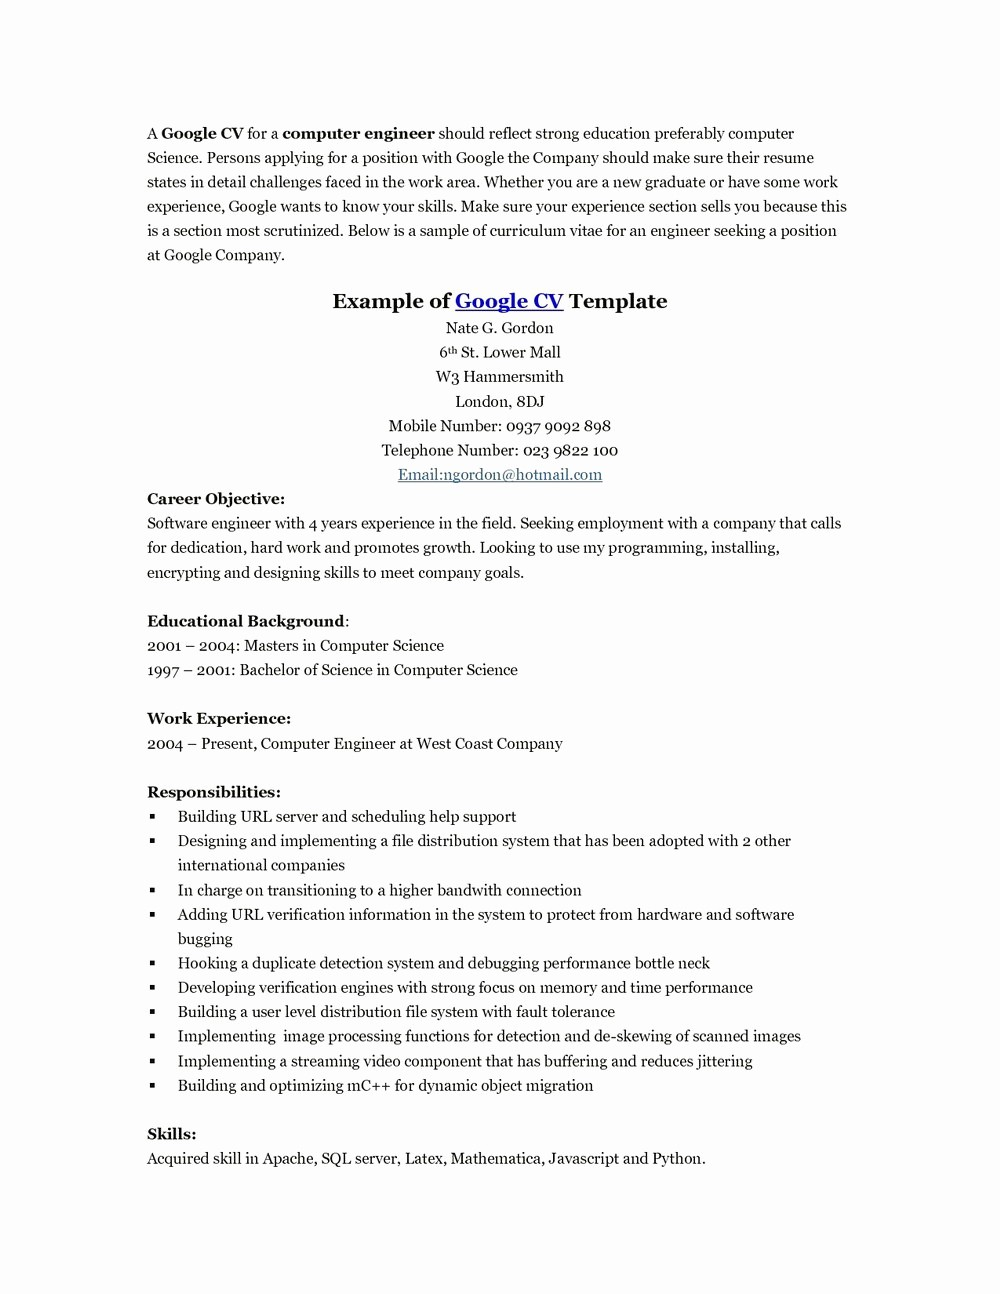 Cover Letter Template Free Download Fresh Resume Cover Letter Template Free Download Cover Letters